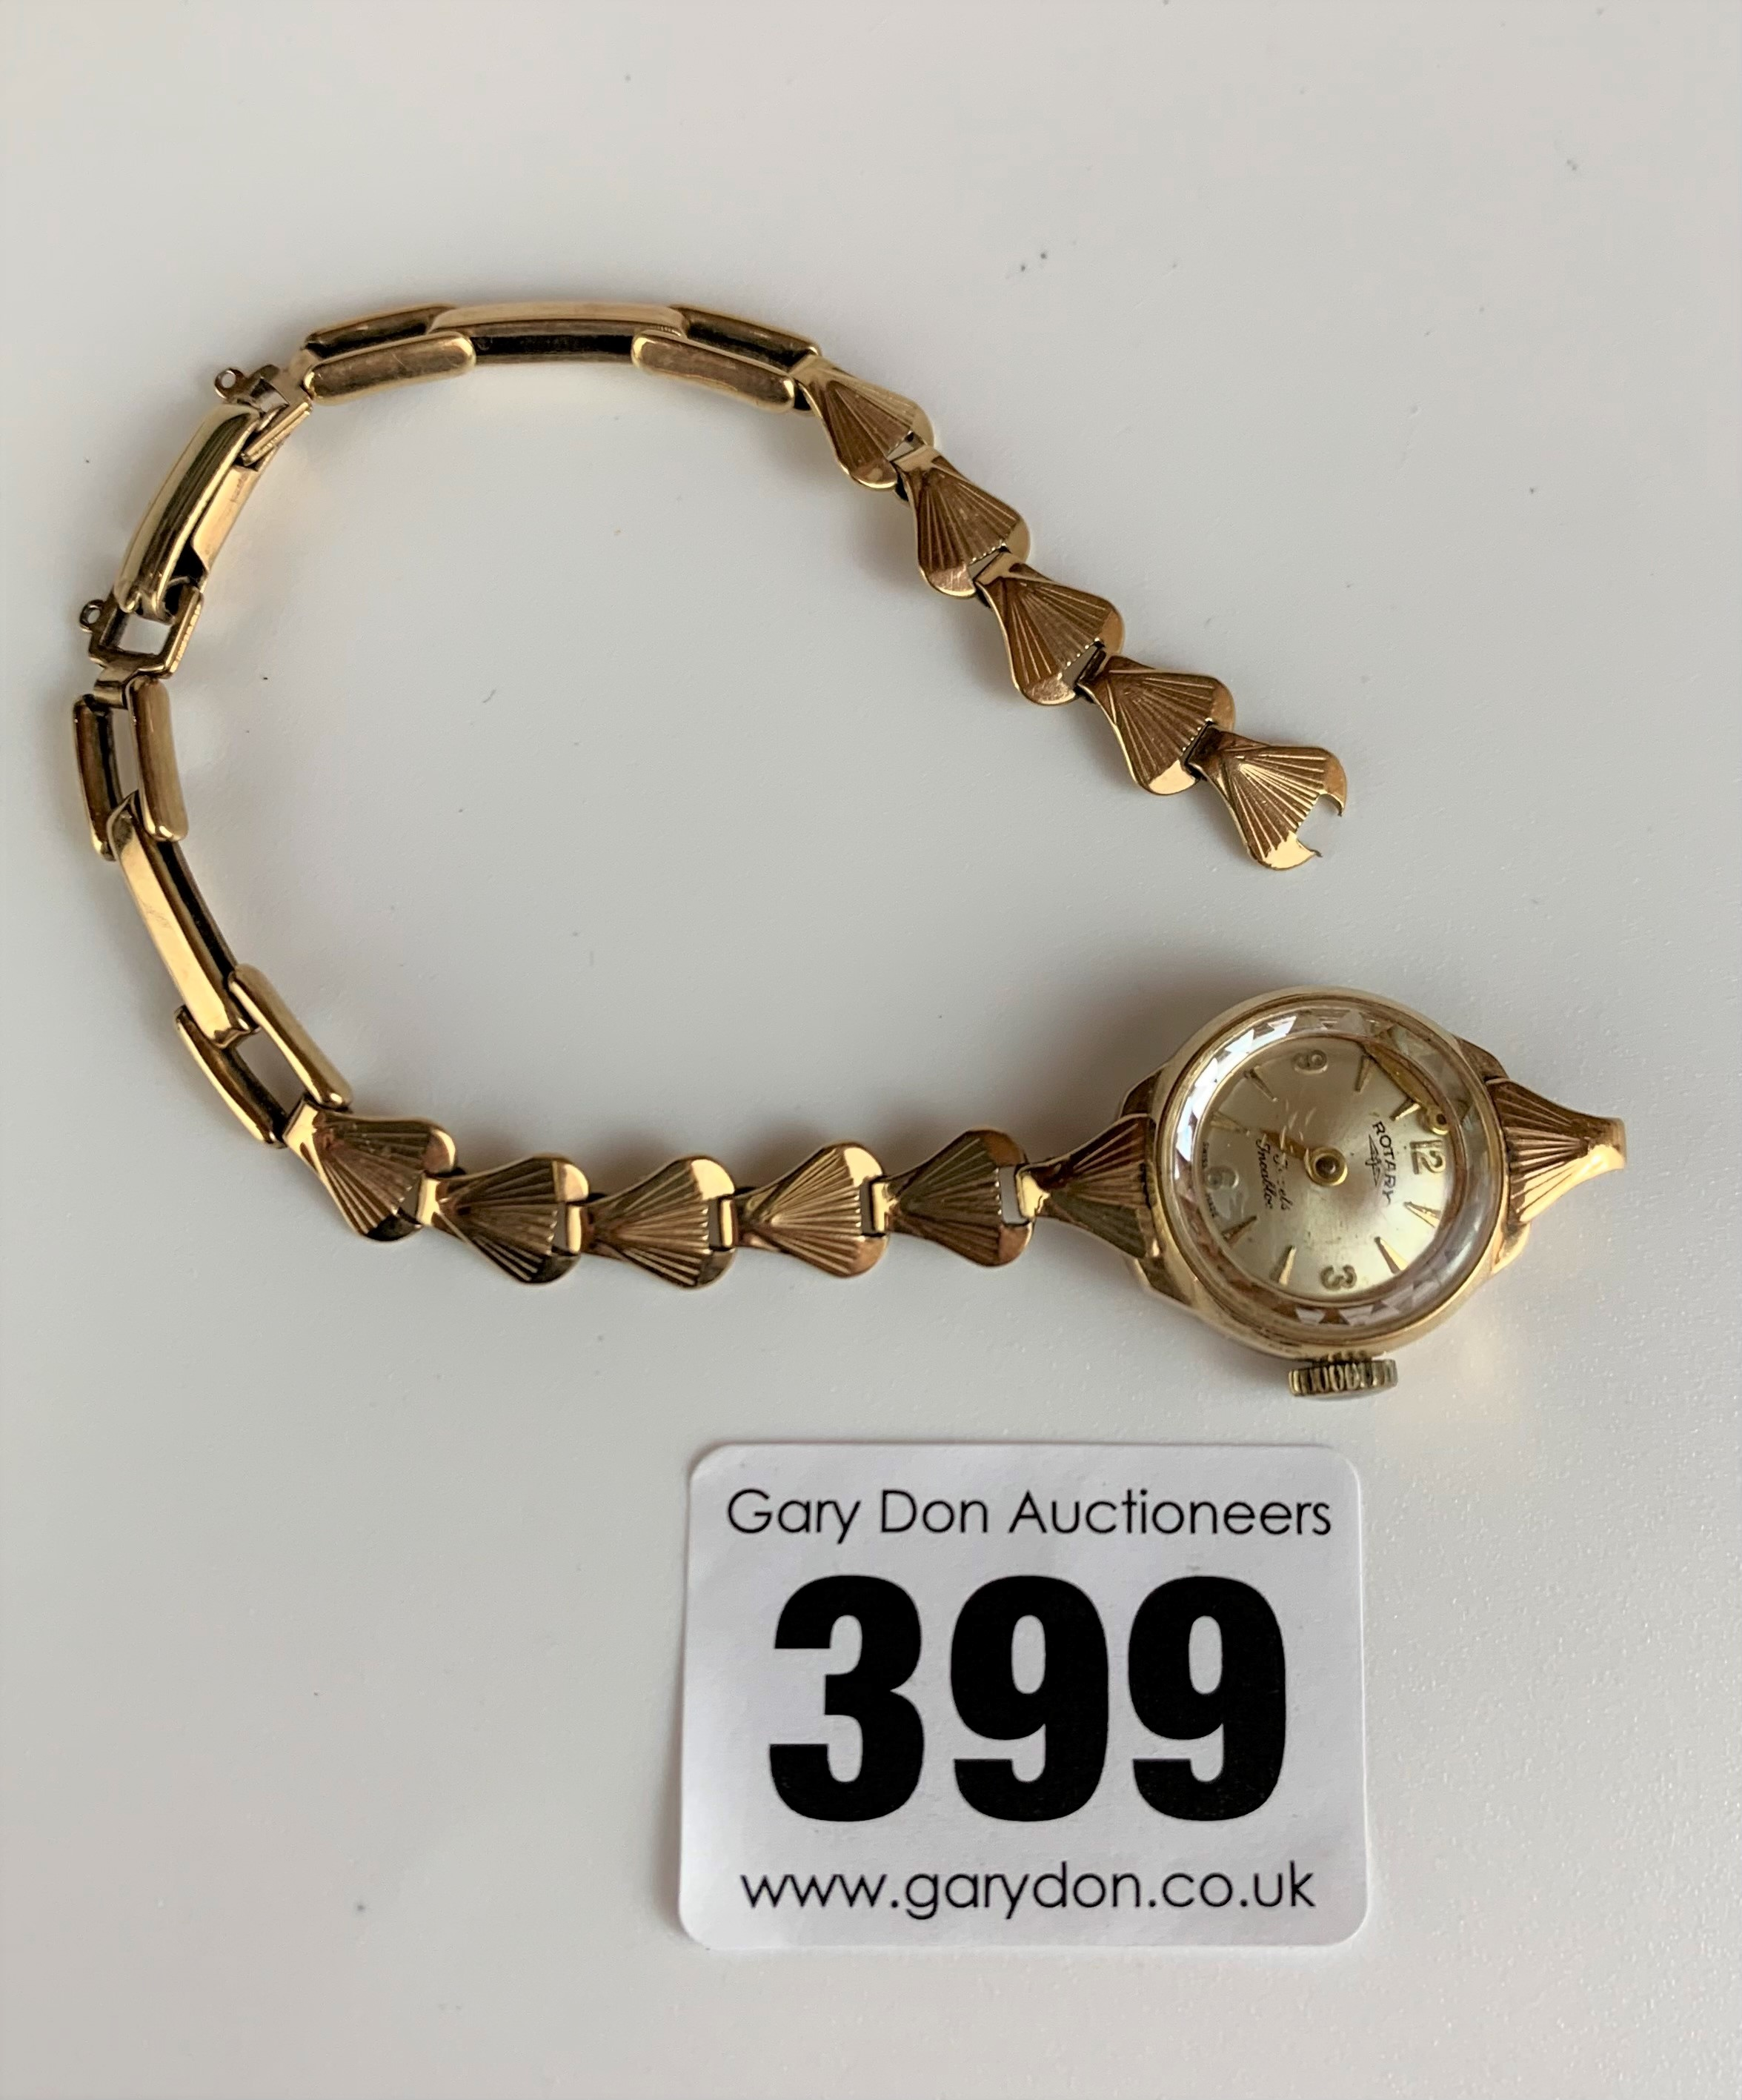 9k gold ladies Rotary watch with 9k gold bracelet (broken), total w: 12.6 gms. Minute hand detached